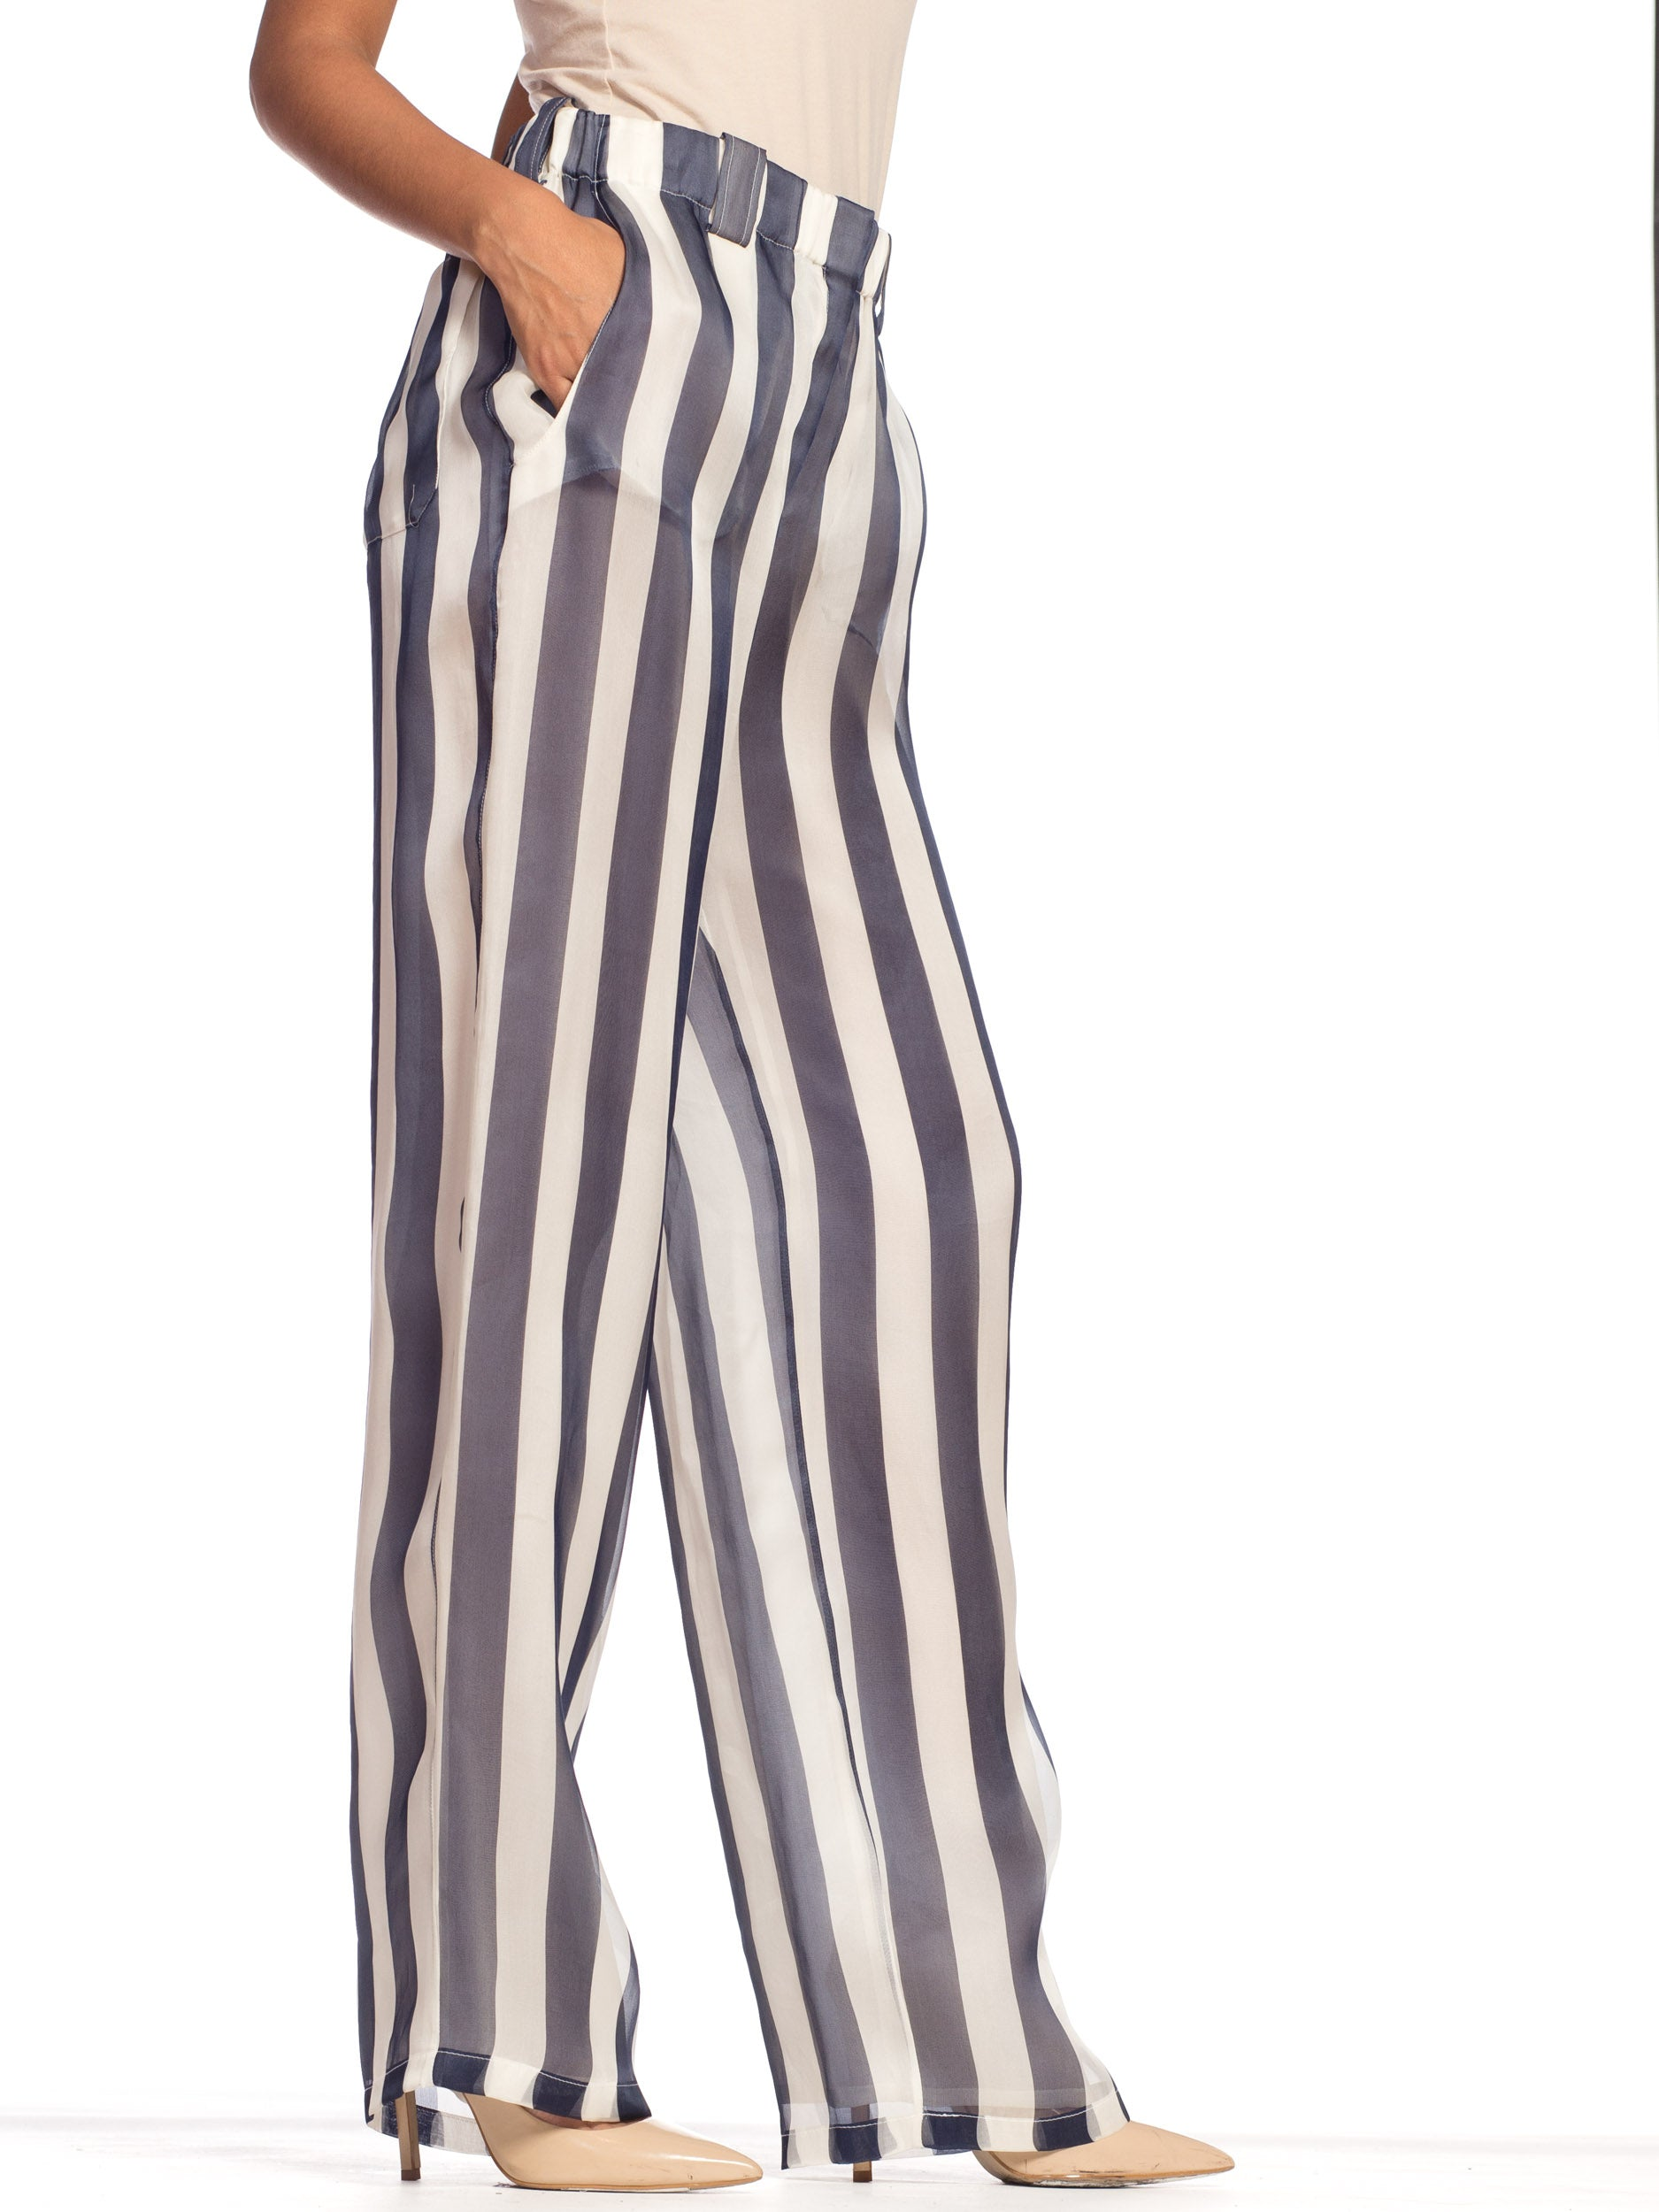 1990S Giorgio Armani Blue & White Silk Organza Nautical Striped Pants